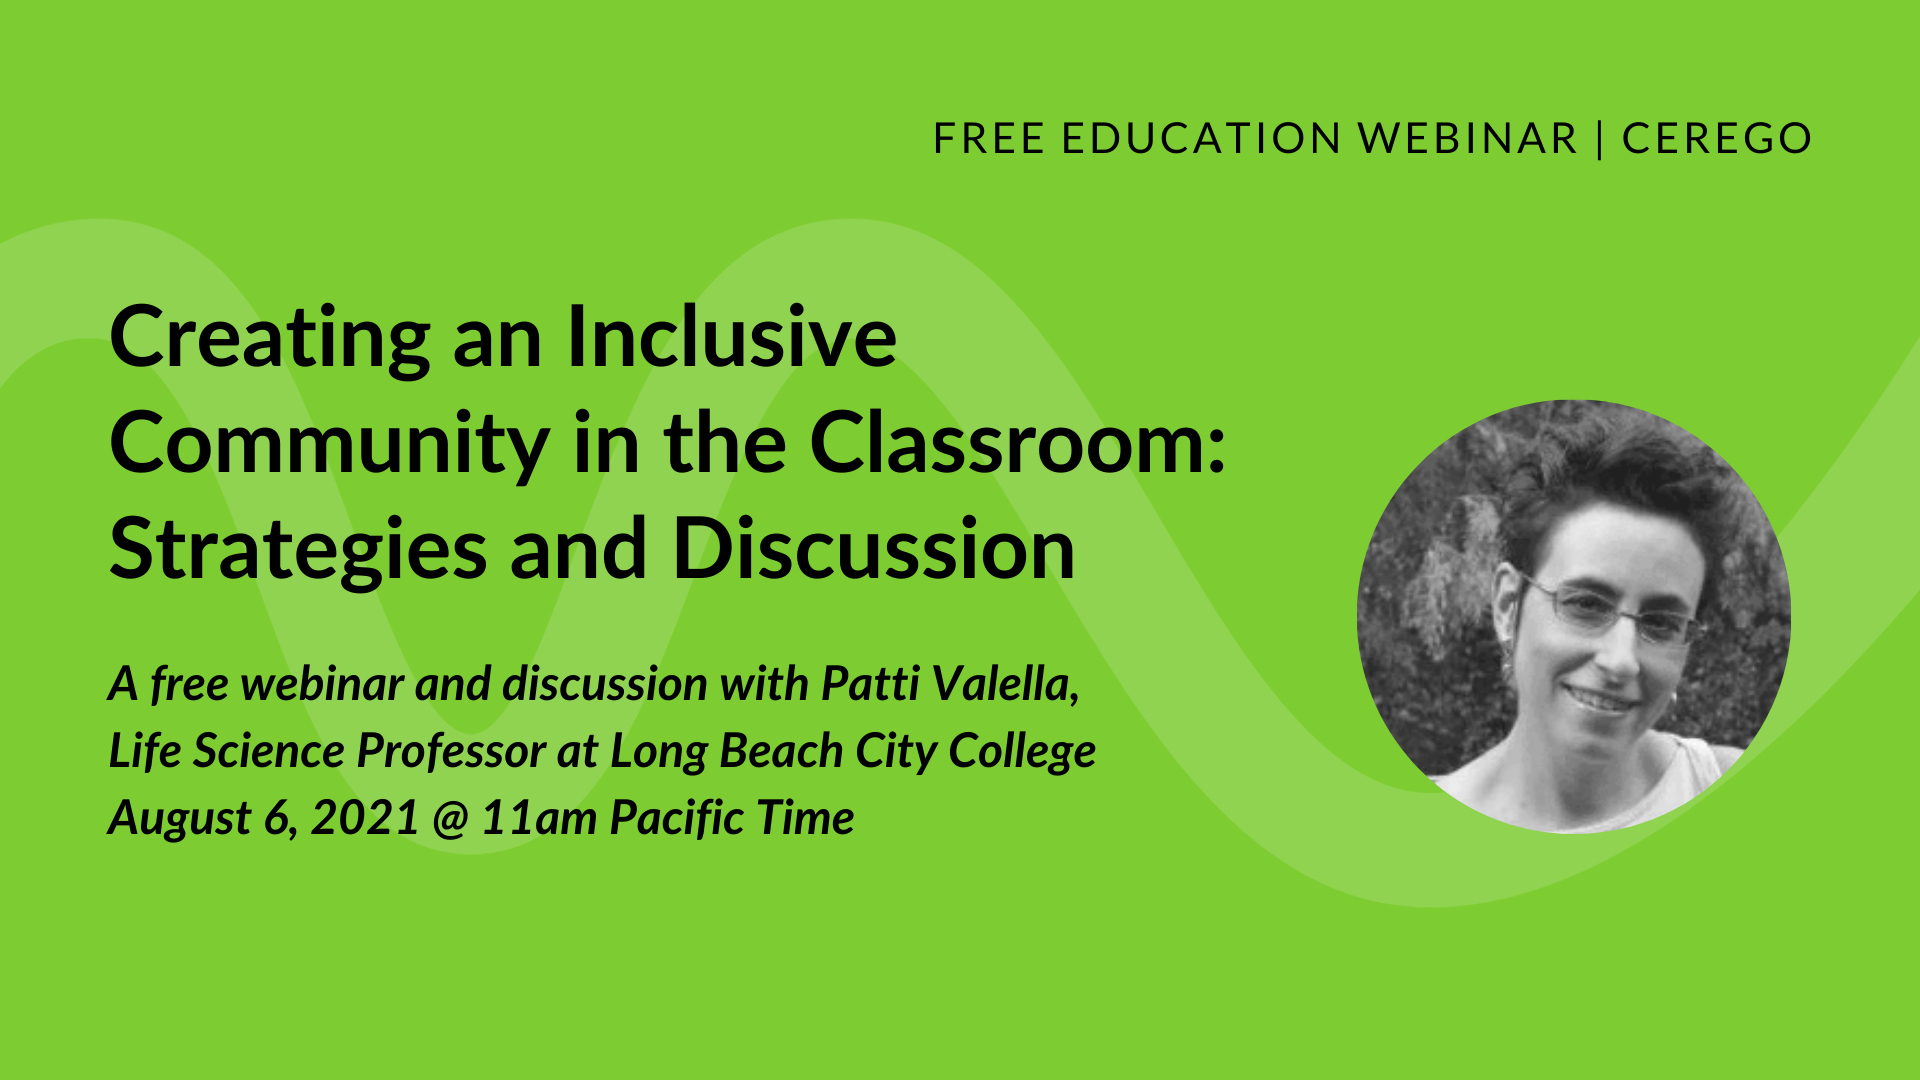 Creating an Inclusive Community in the Classroom